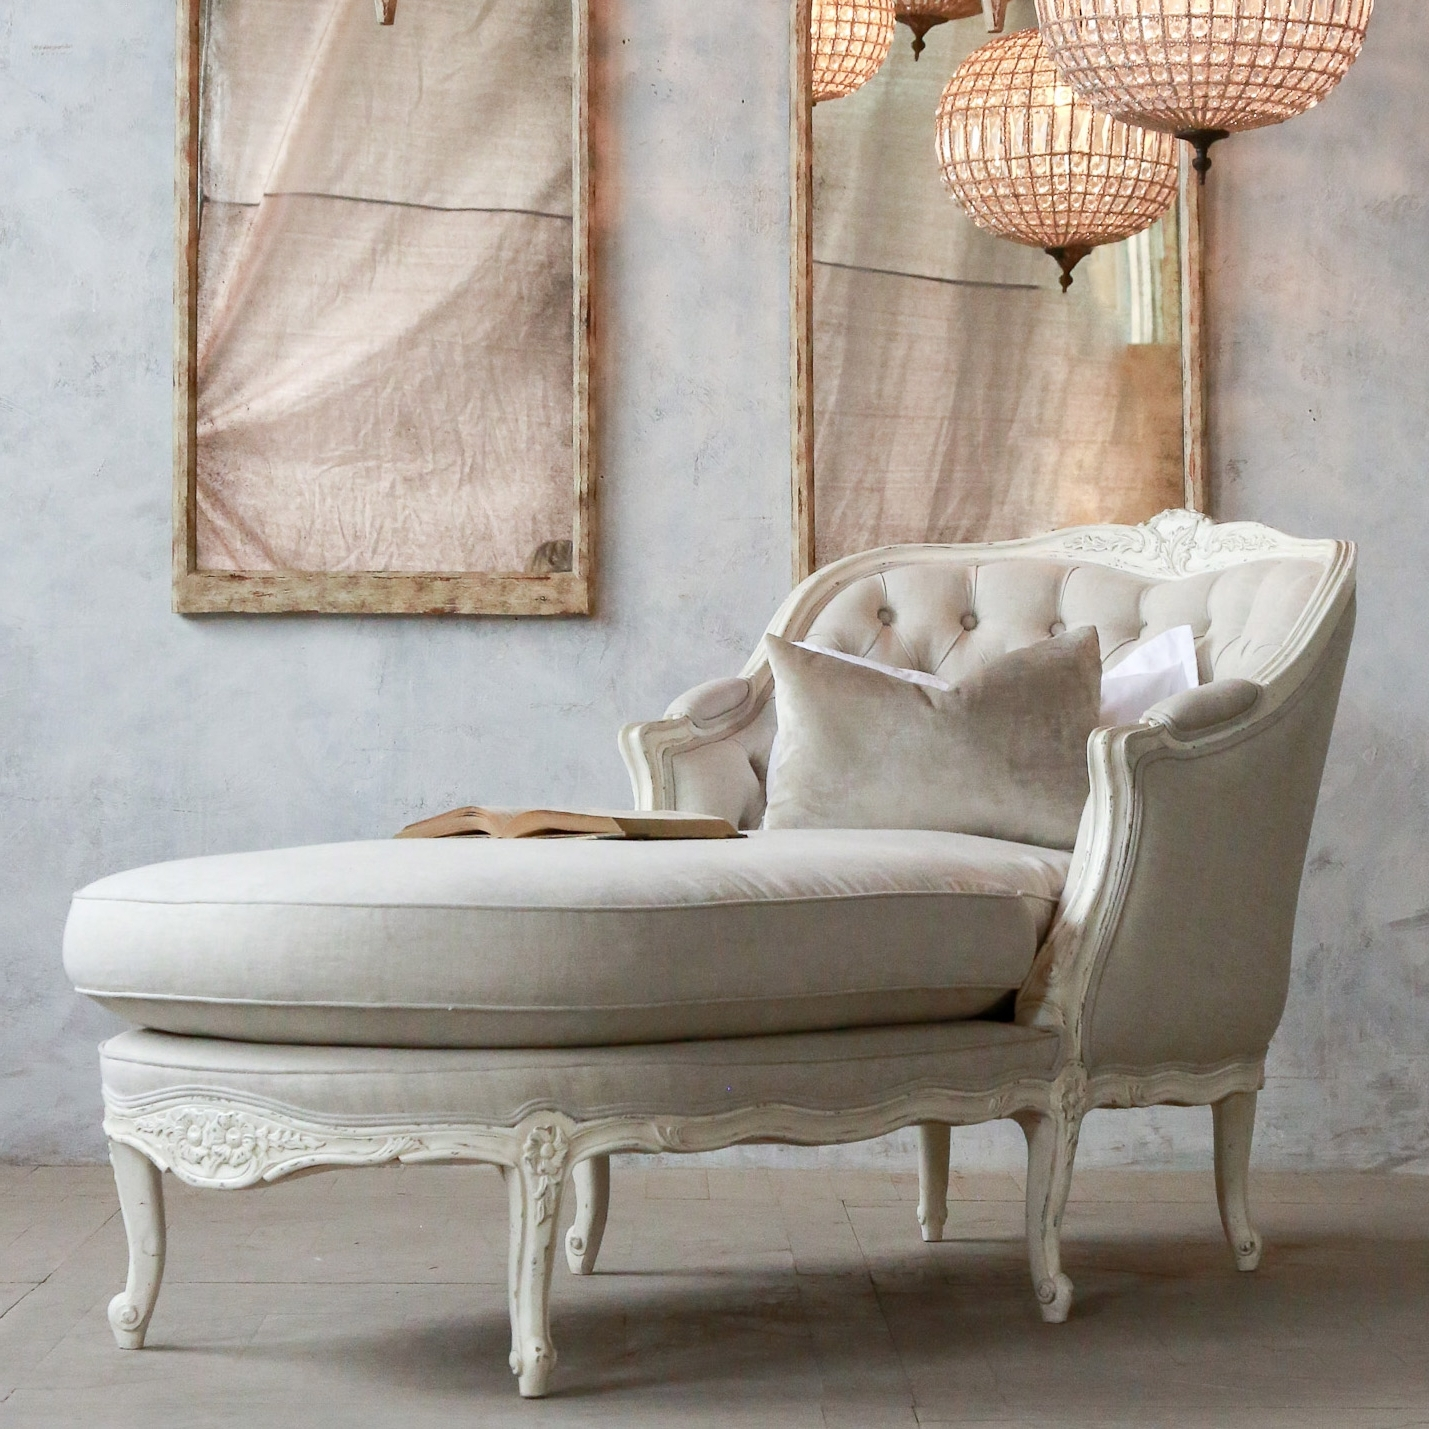 Antique Chaise Lounge Chairs For Current Vintage Victorian Chaise Lounge – Home Design And Decor (View 12 of 15)